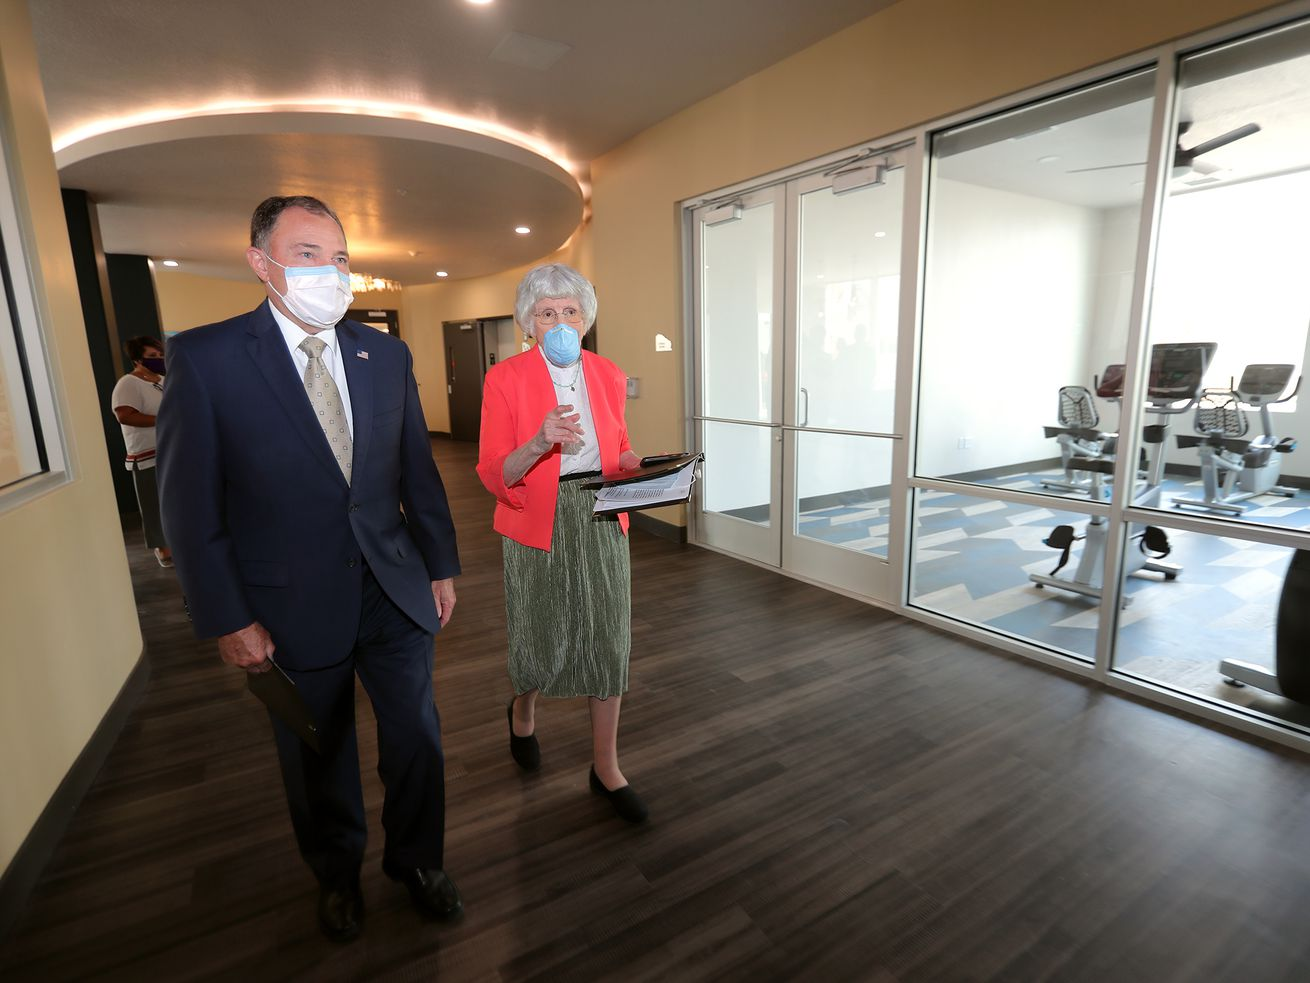 Gov. Gary Herbert, left, and Pamela Atkinson visit during a ribbon-cutting ceremony for Pamela's Place Apartments in Salt Lake City on Tuesday, Sept. 15, 2020. The Housing Authority of Salt Lake City newest, permanent supportive housing development is named after Atkinson, a longtime community advocate for people experiencing homelessness.